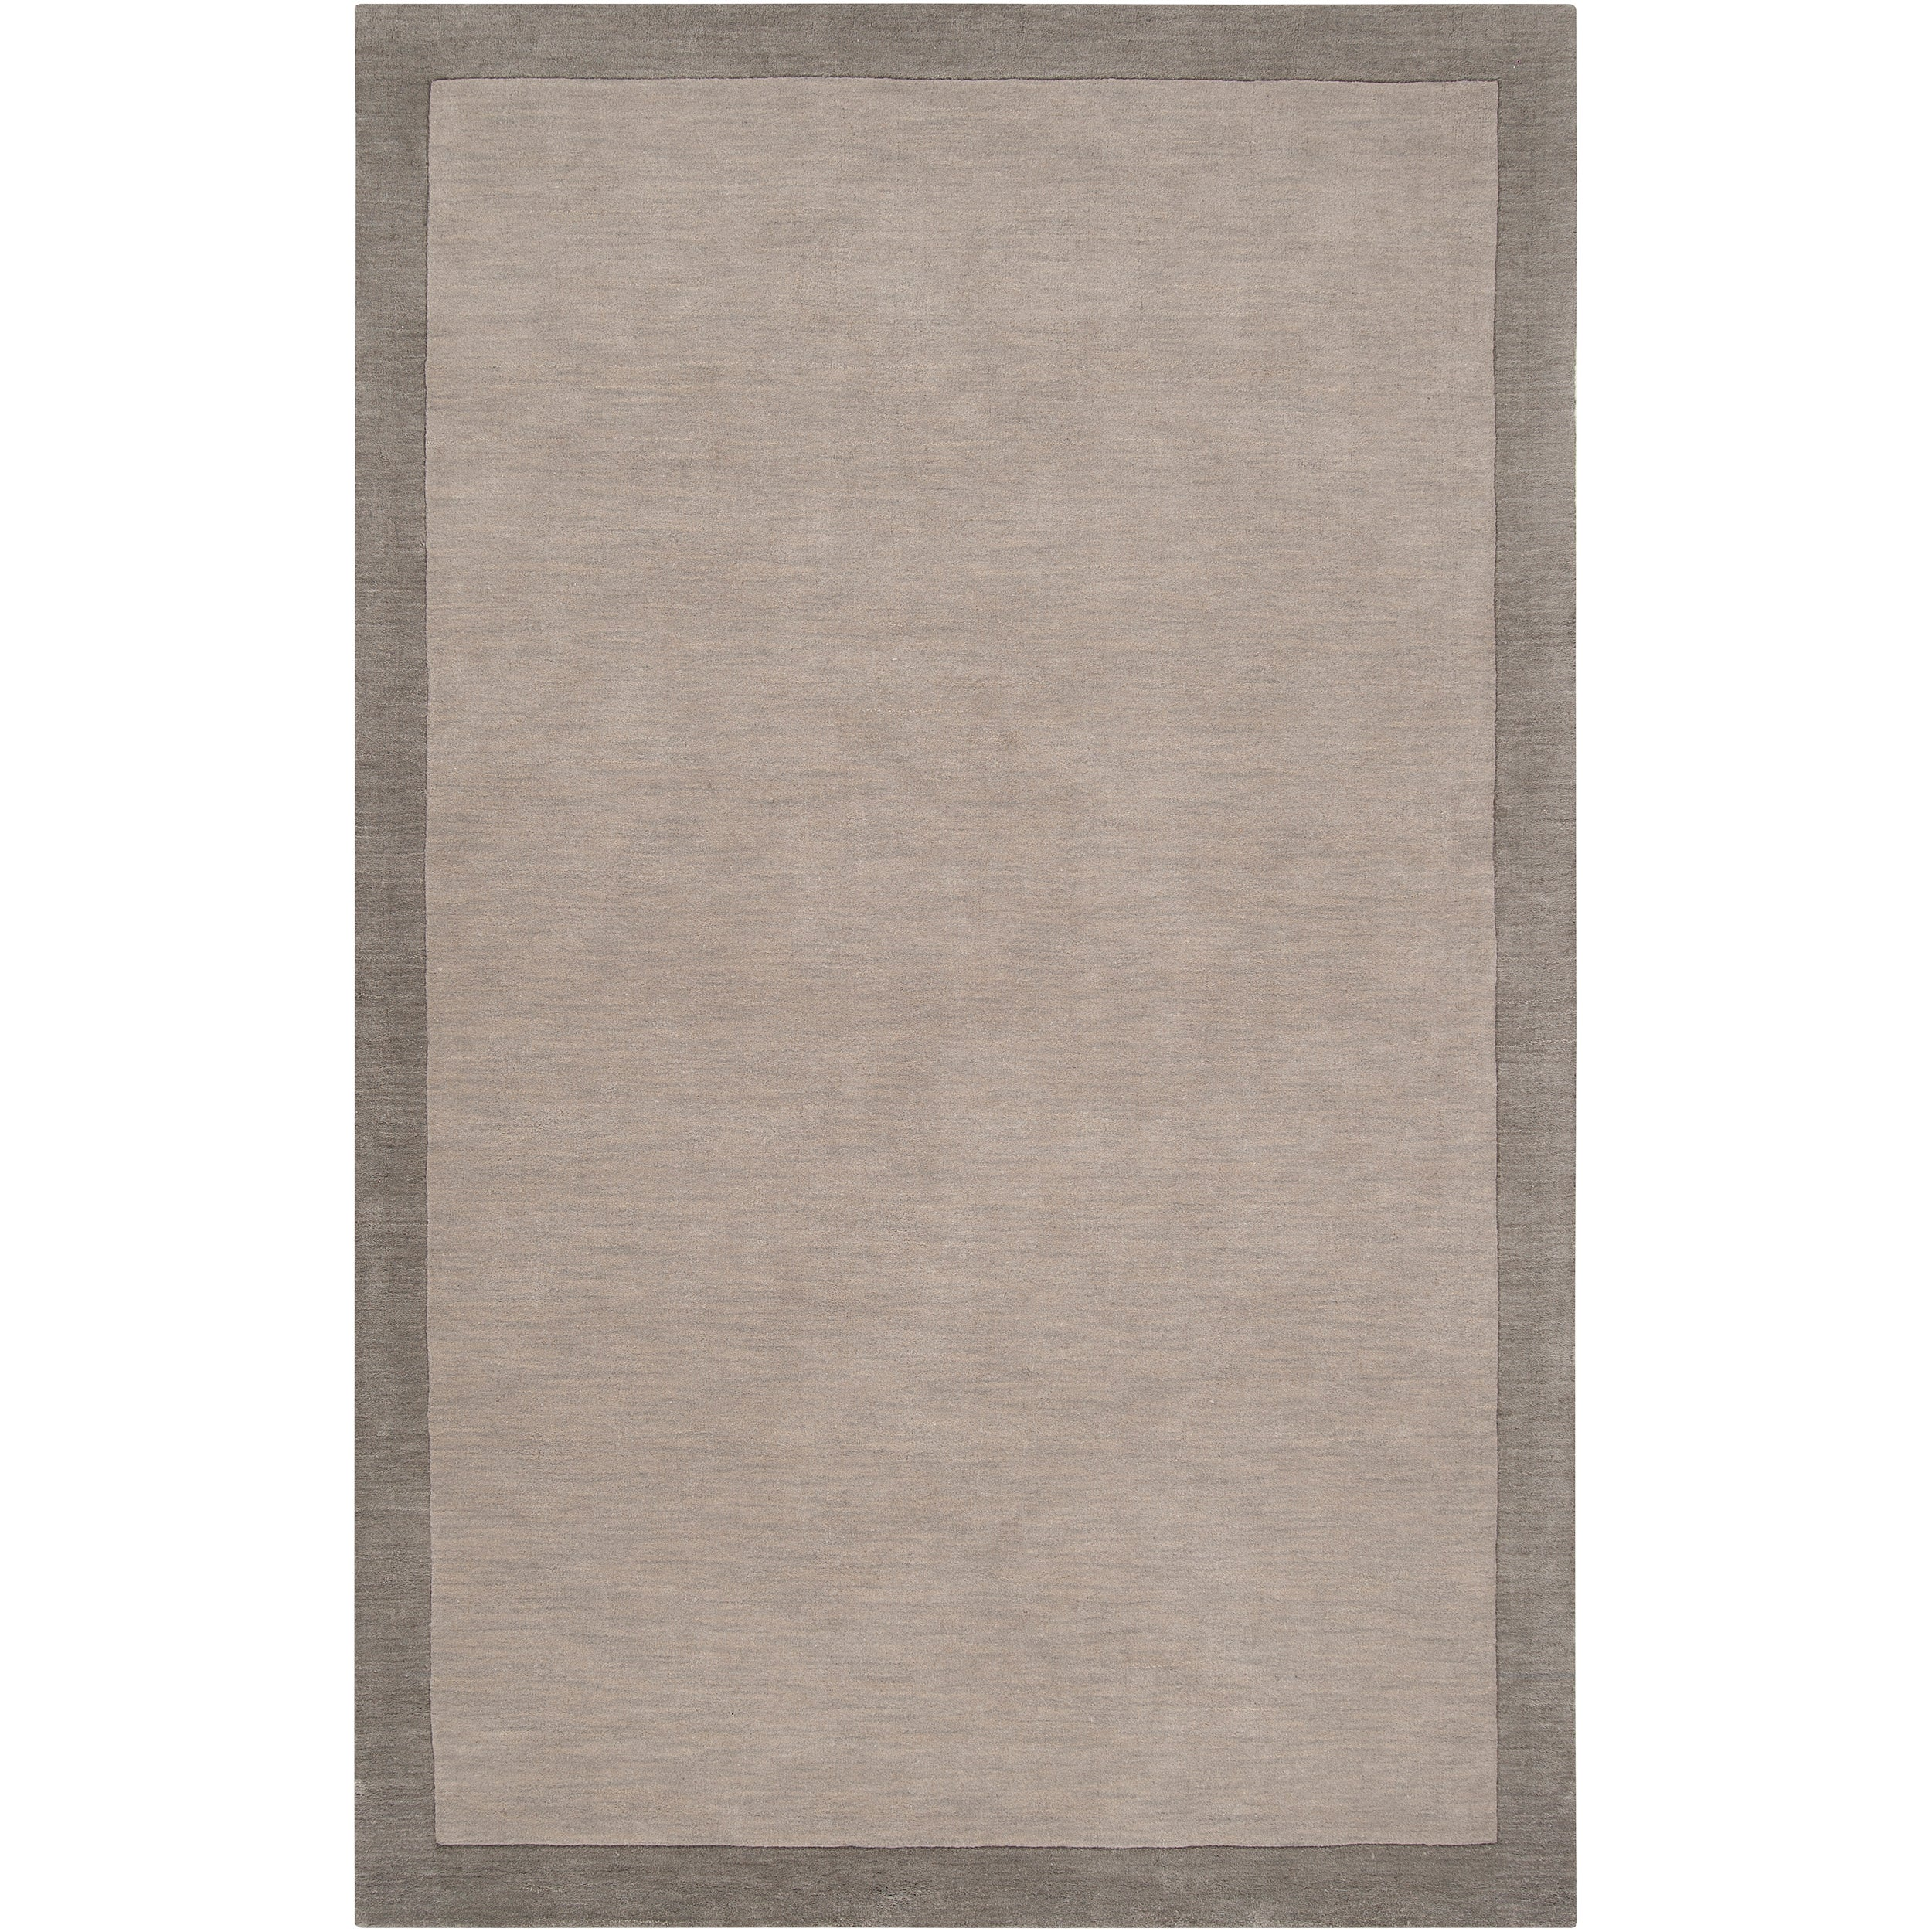 Loomed Gray Madison Square Wool Rug (5' x 7'6)